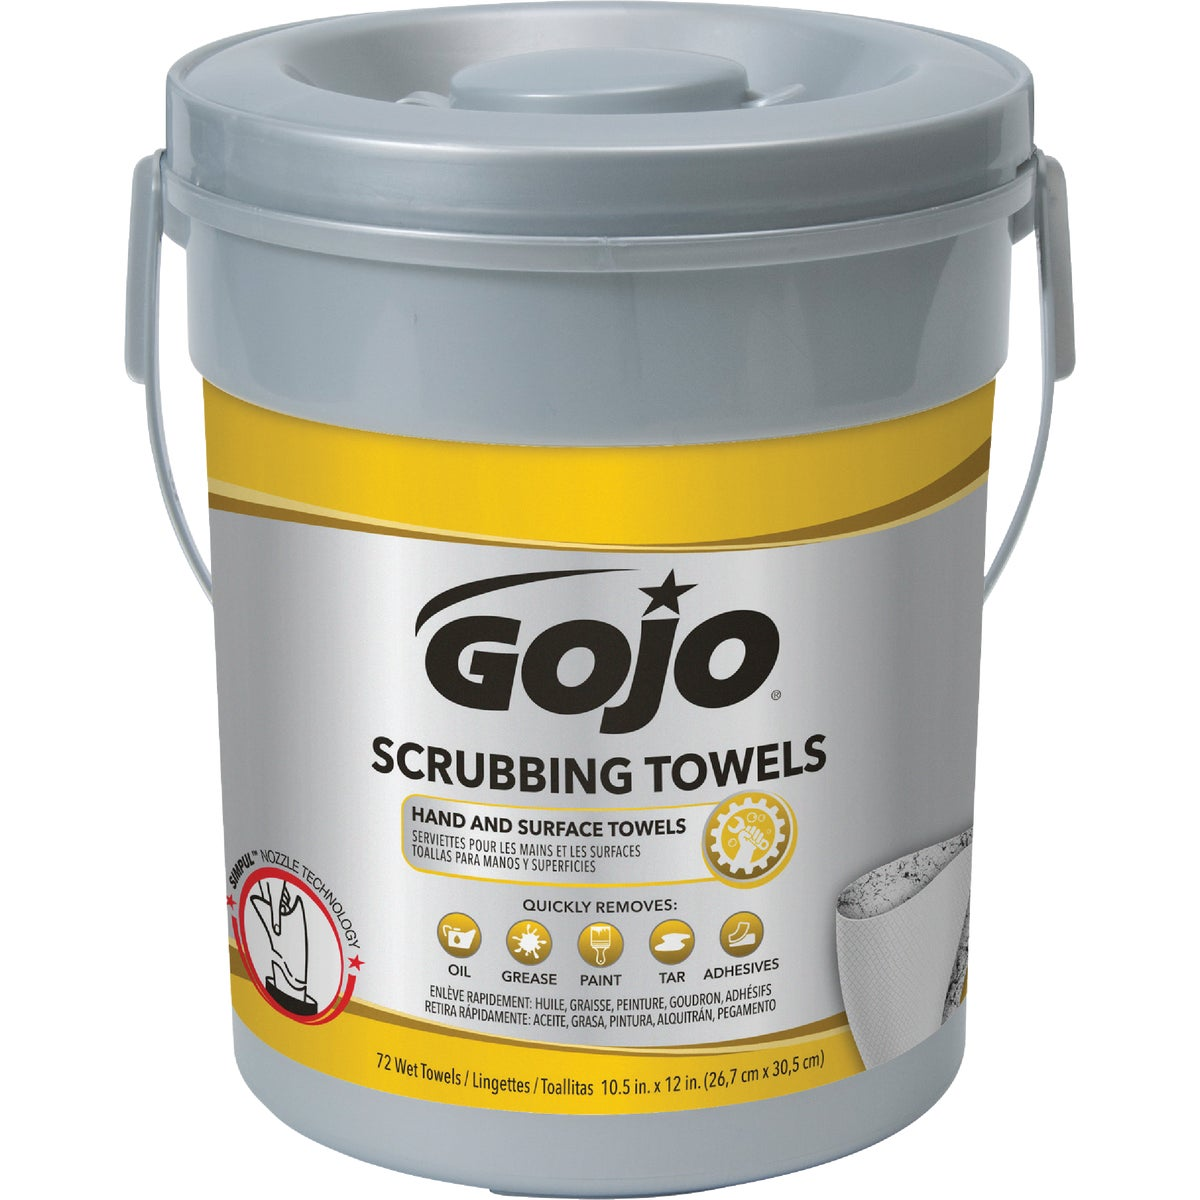 GOJO SCRUB WIPES 72 CT